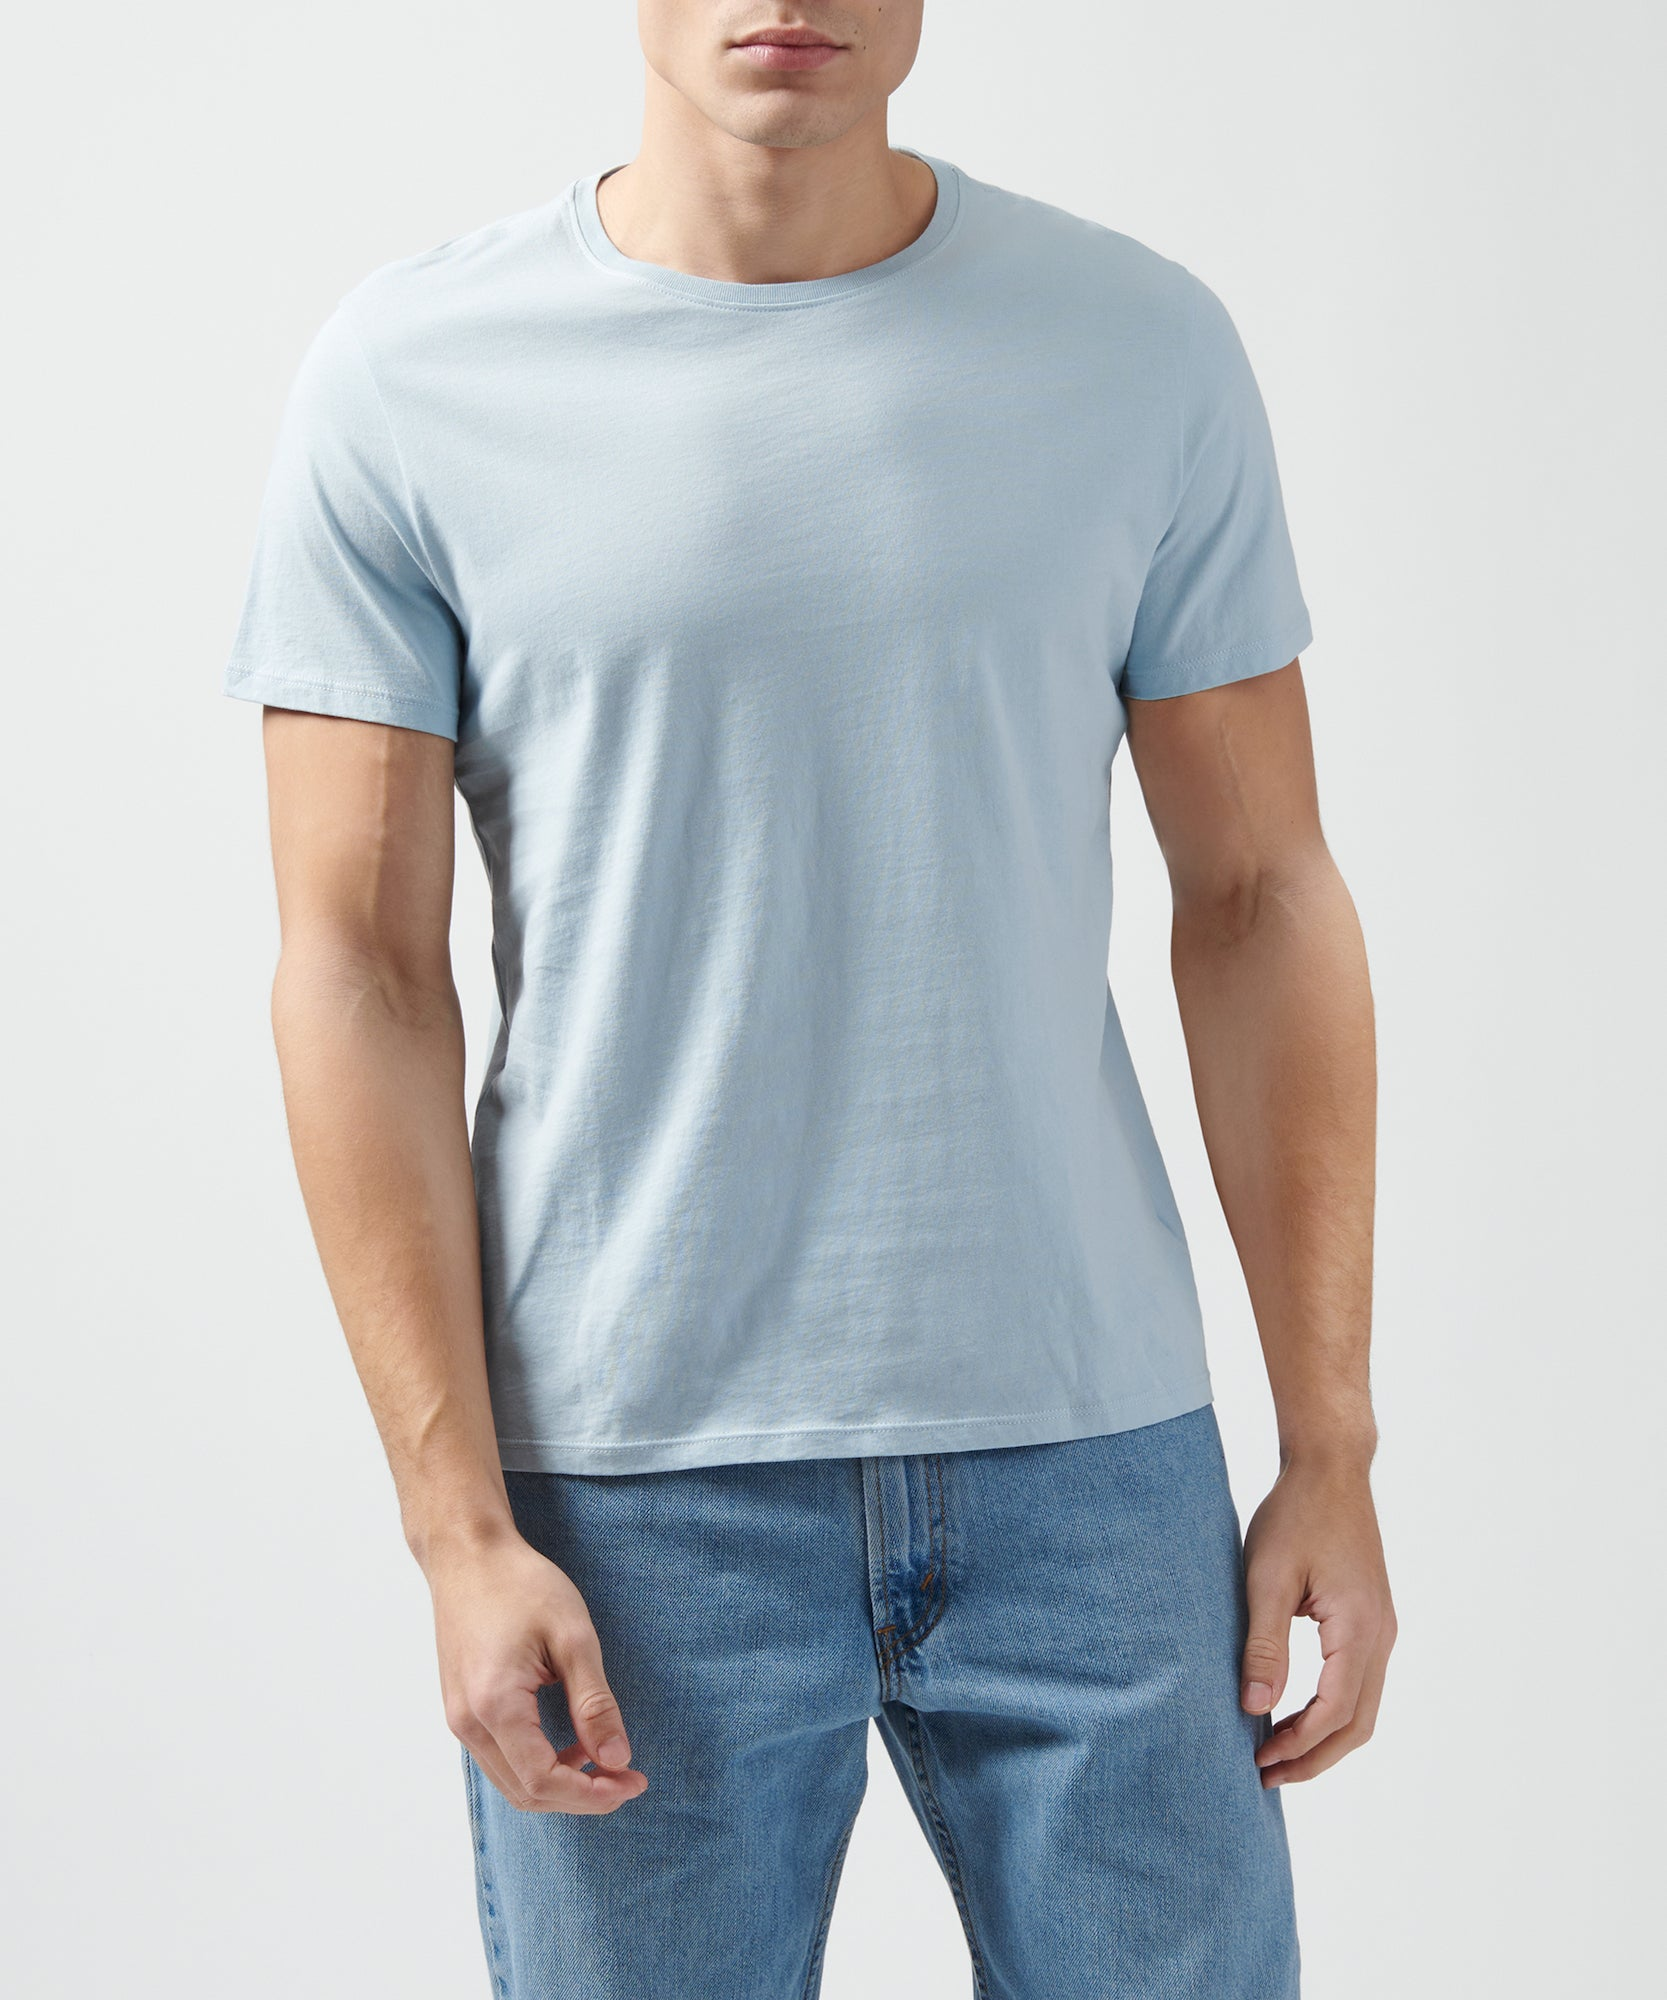 Blue Classic Jersey Crew Neck Tee - Men's Cotton Short Sleeve T-shirt by ATM Anthony Thomas Melillo